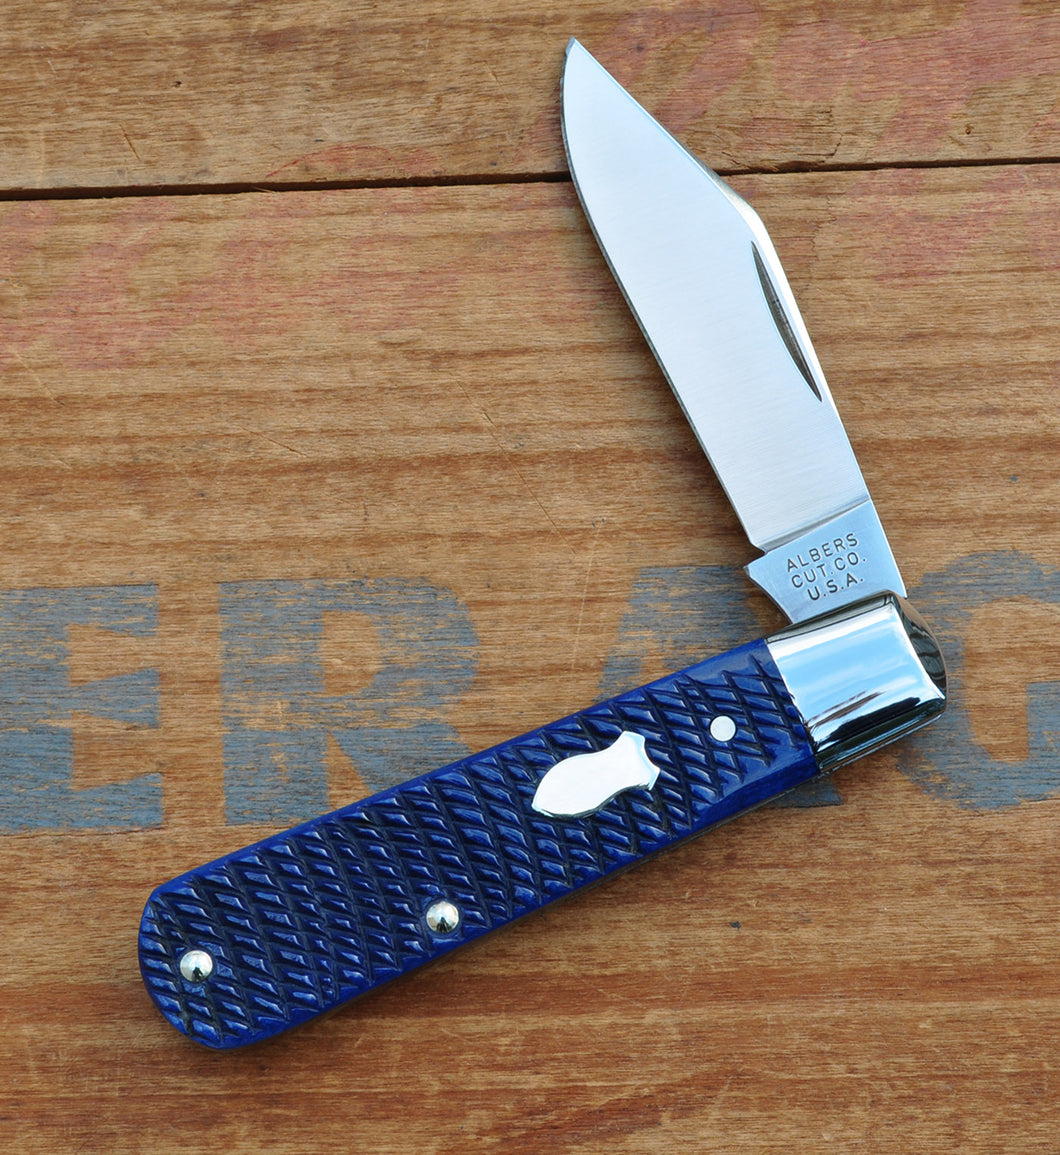 Blue Rope Jigged Bone Single Clip Blade Knife